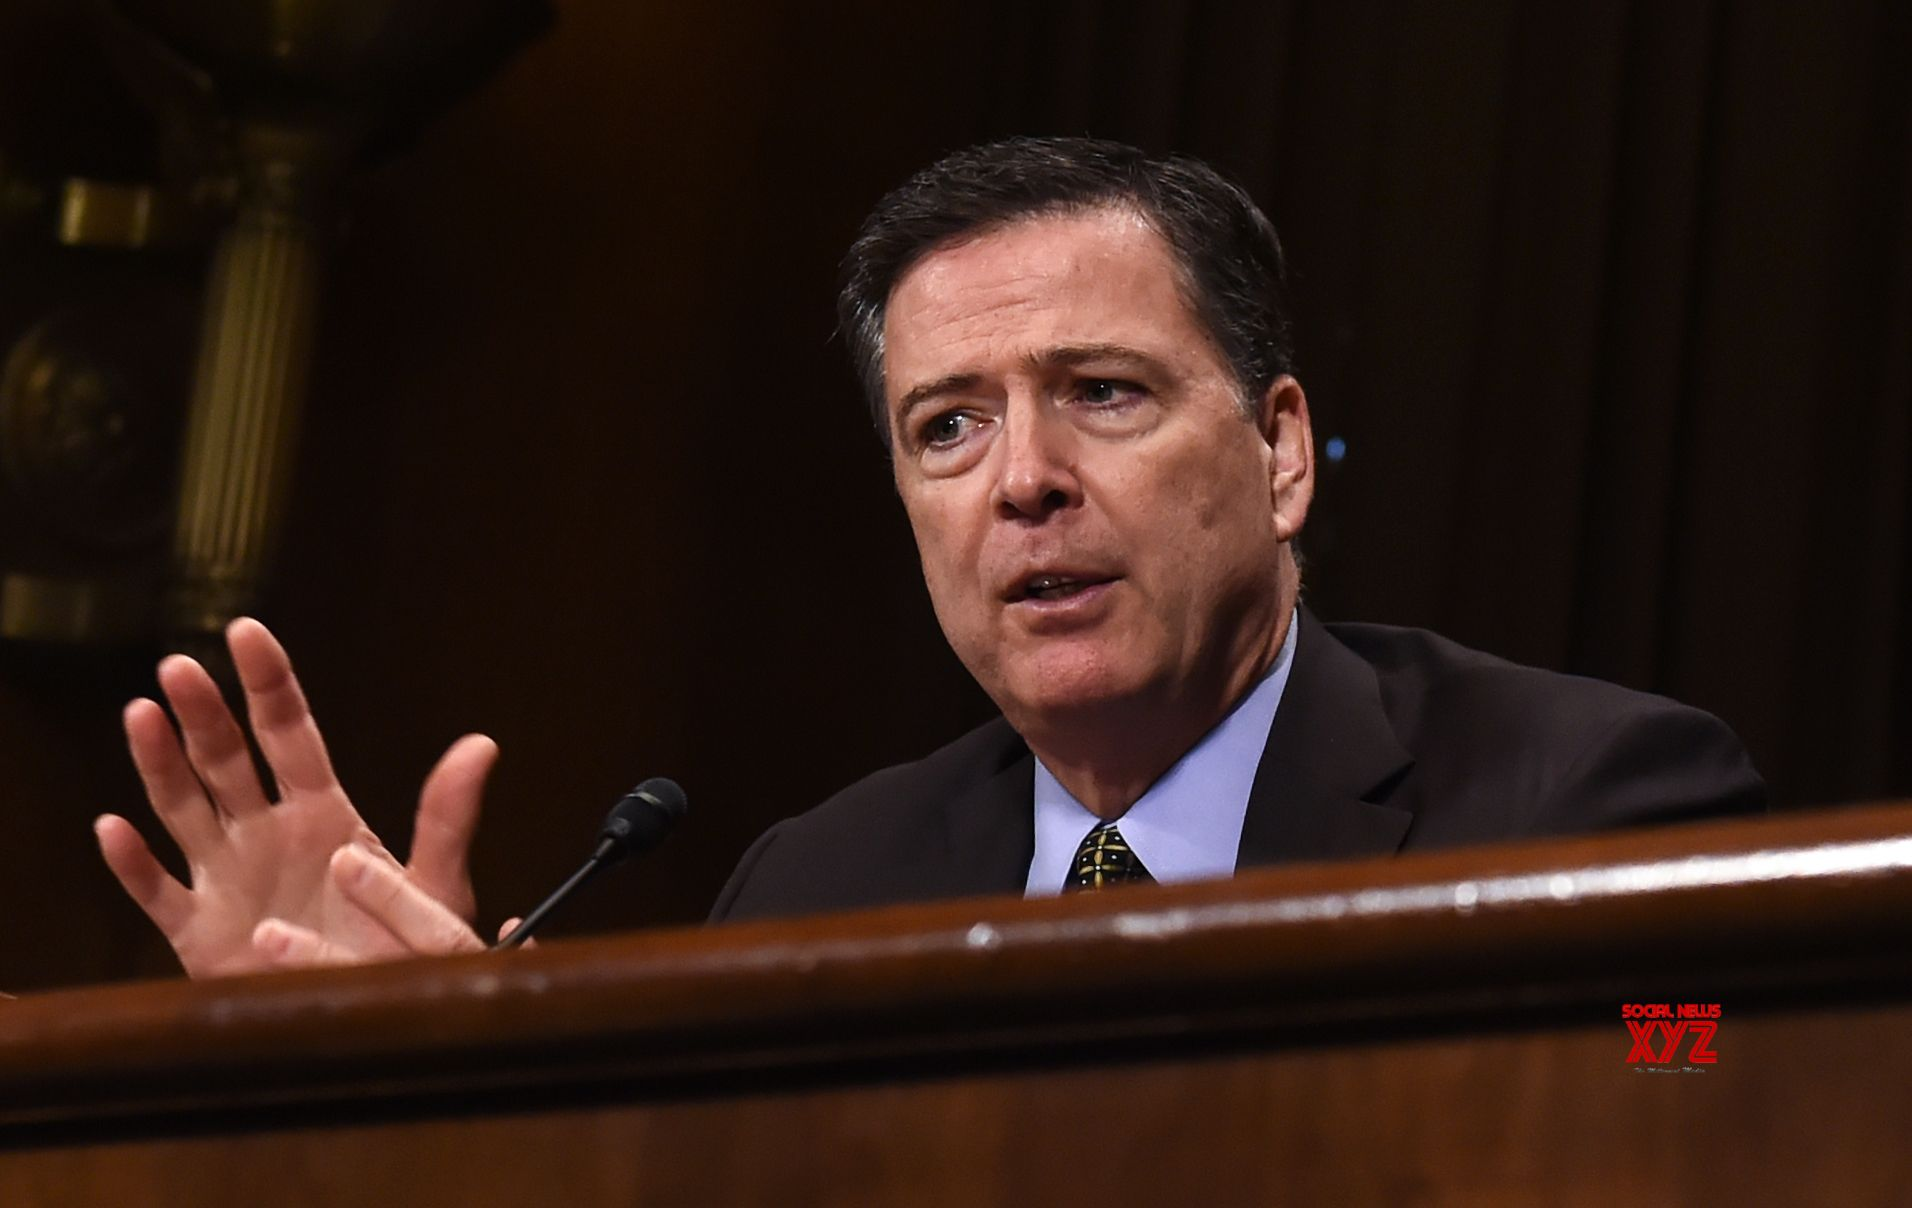 Comey calls Trump 'serial liar', 'morally unfit' to be President